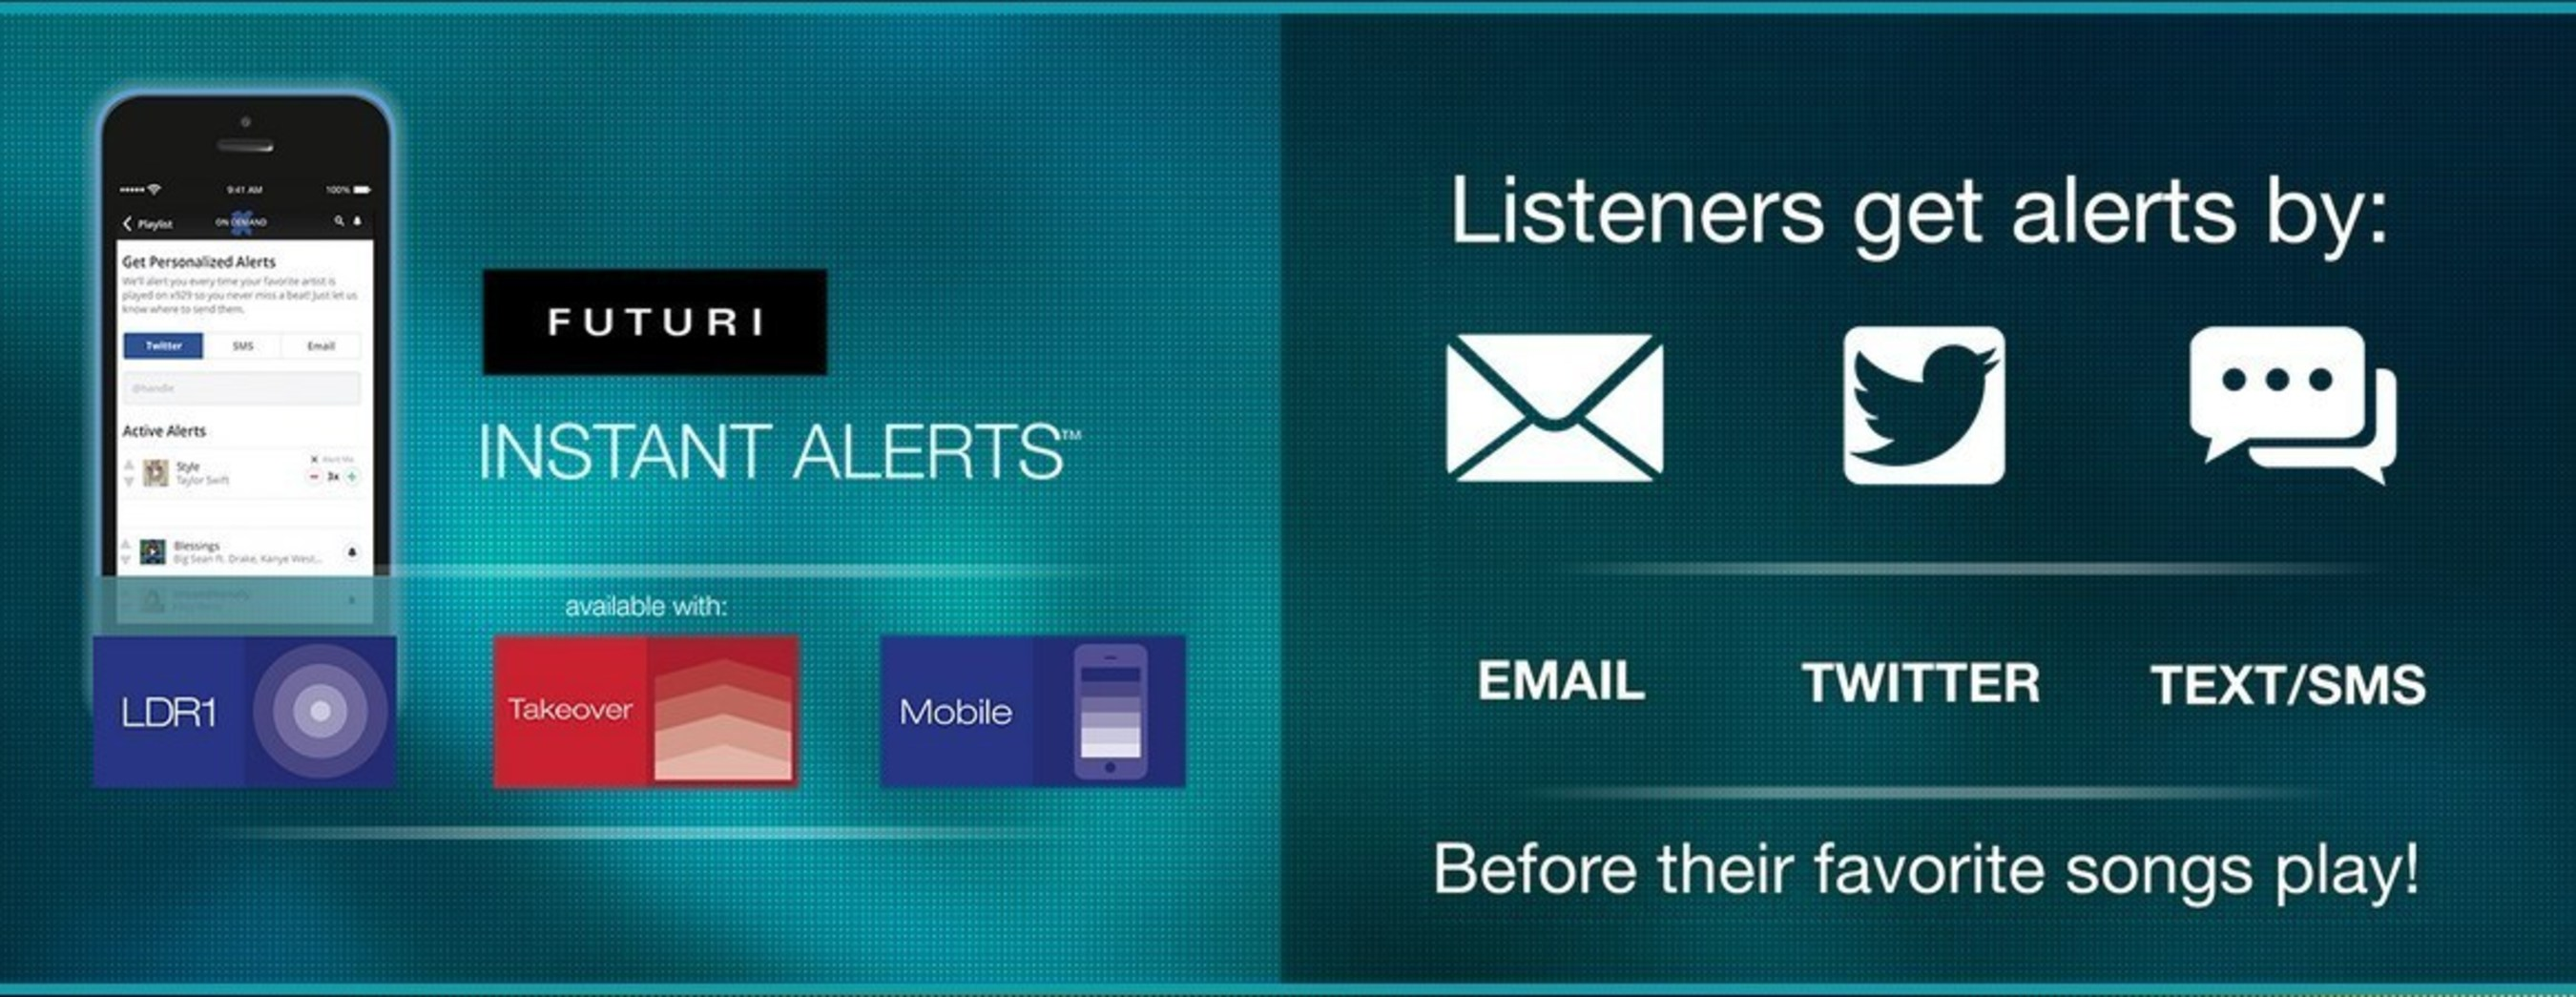 Futuri's 'Instant Alerts' Power Big Gains in Radio Station Tune-Ins, Time Spent Listening